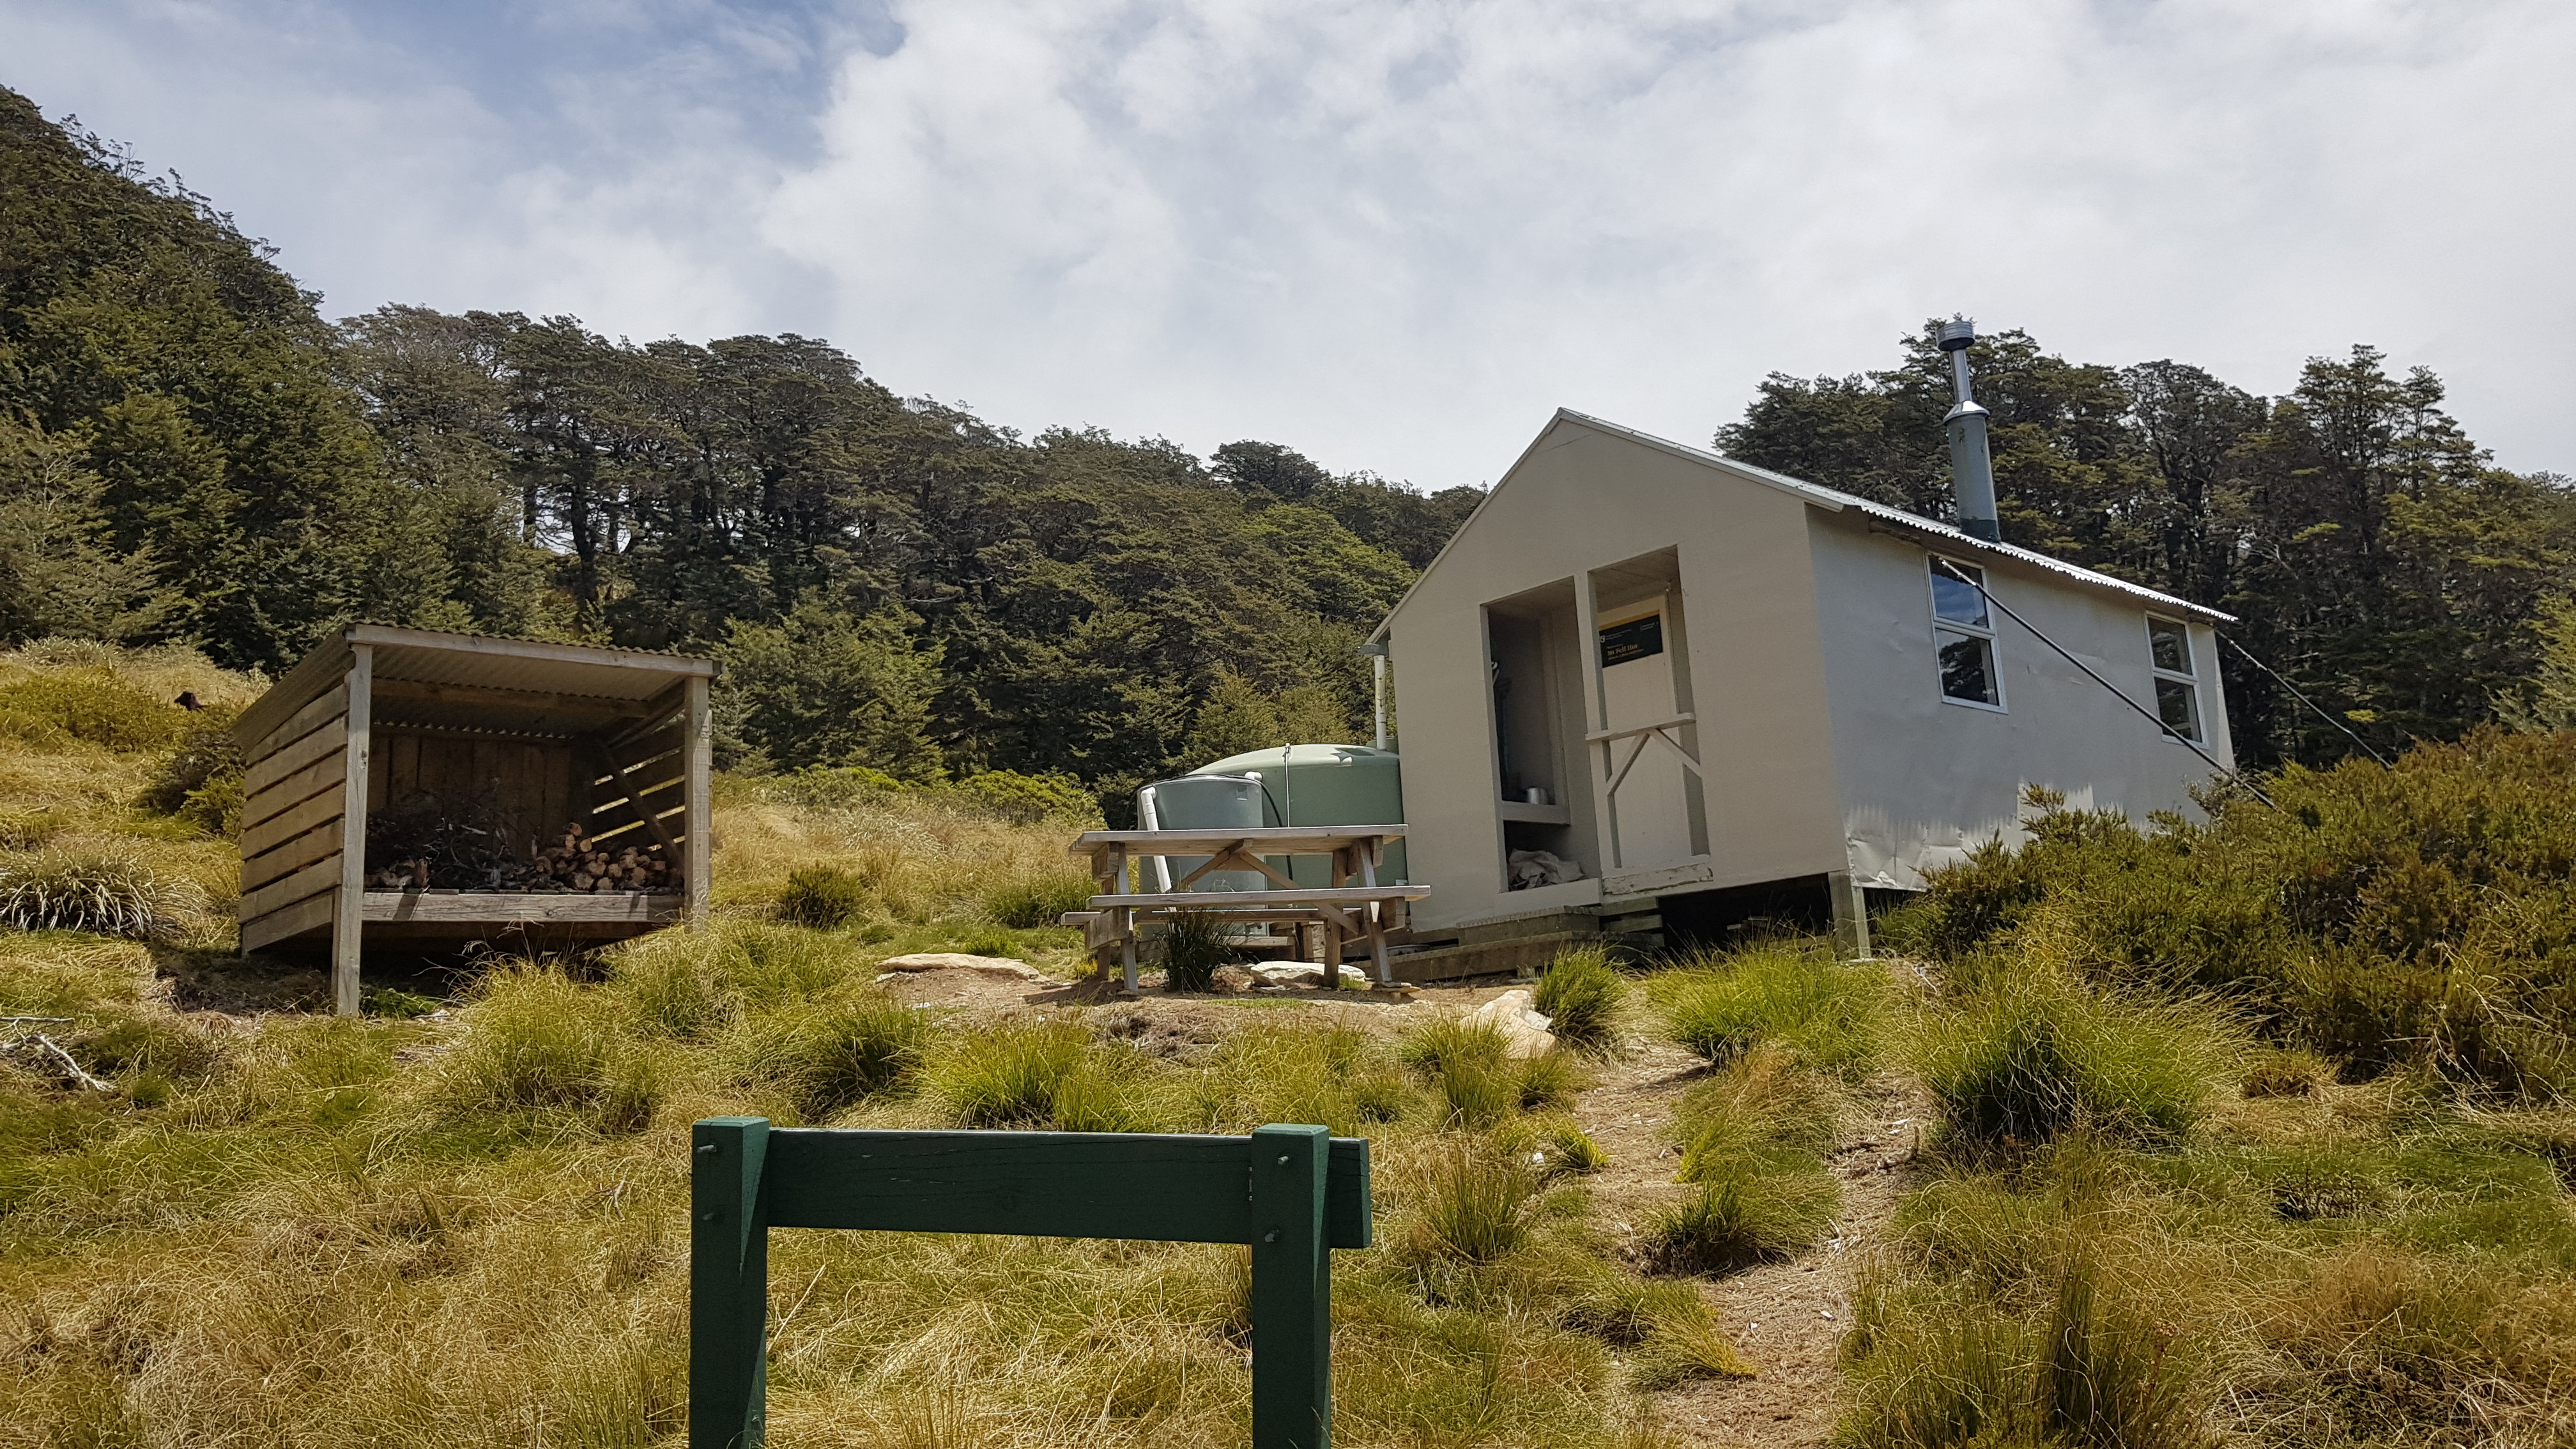 Mount Fell hut - Tinytramper